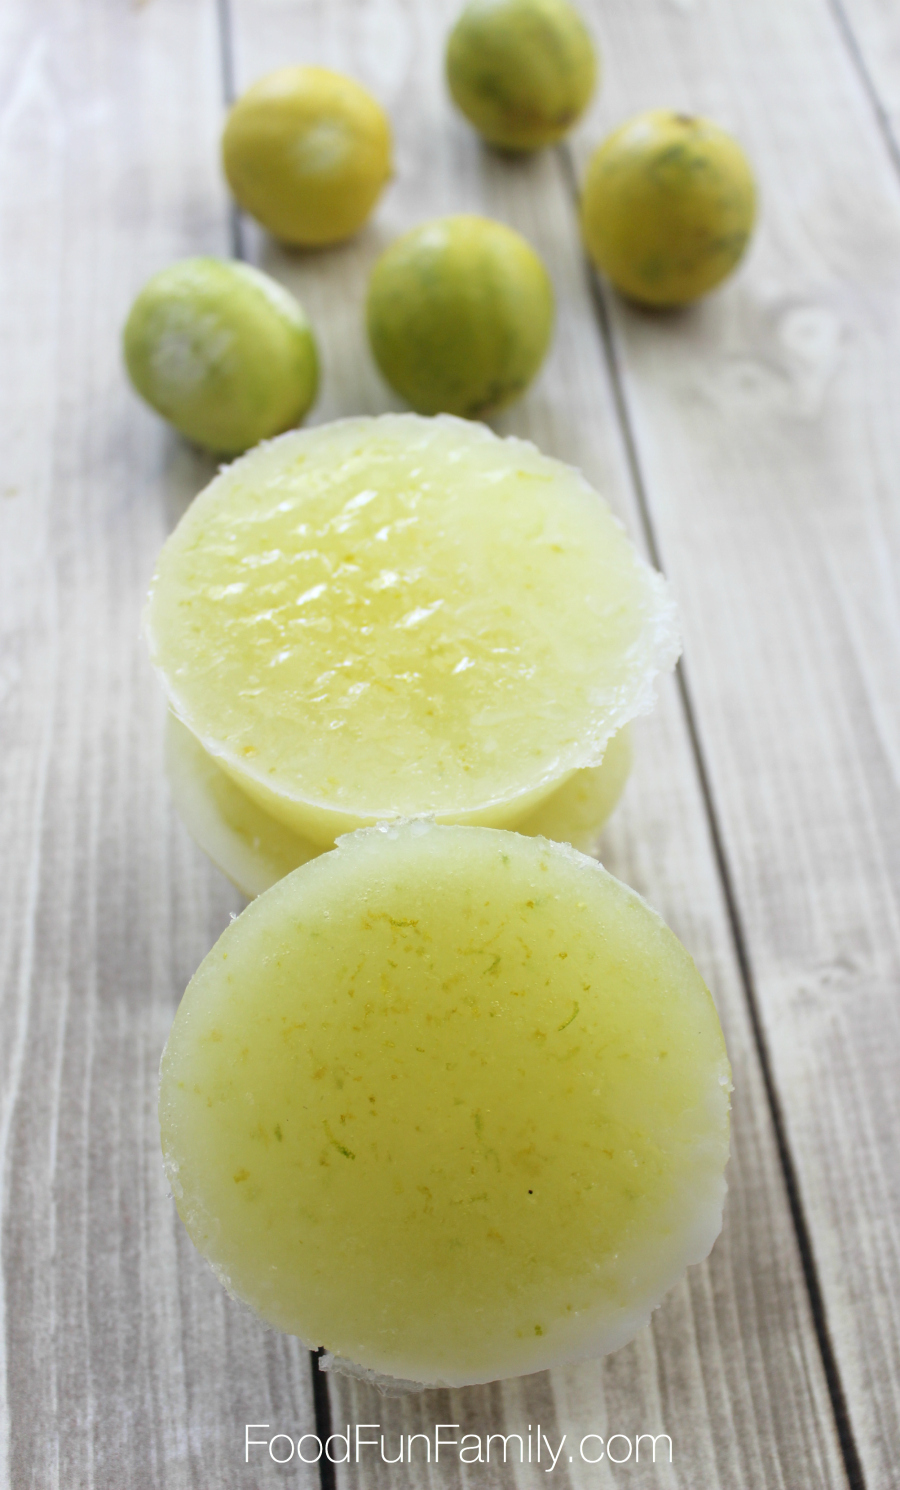 Lime and coconut sugar scrub bars using essential oils and skin-friendly, natural ingredients from Food Fun Family